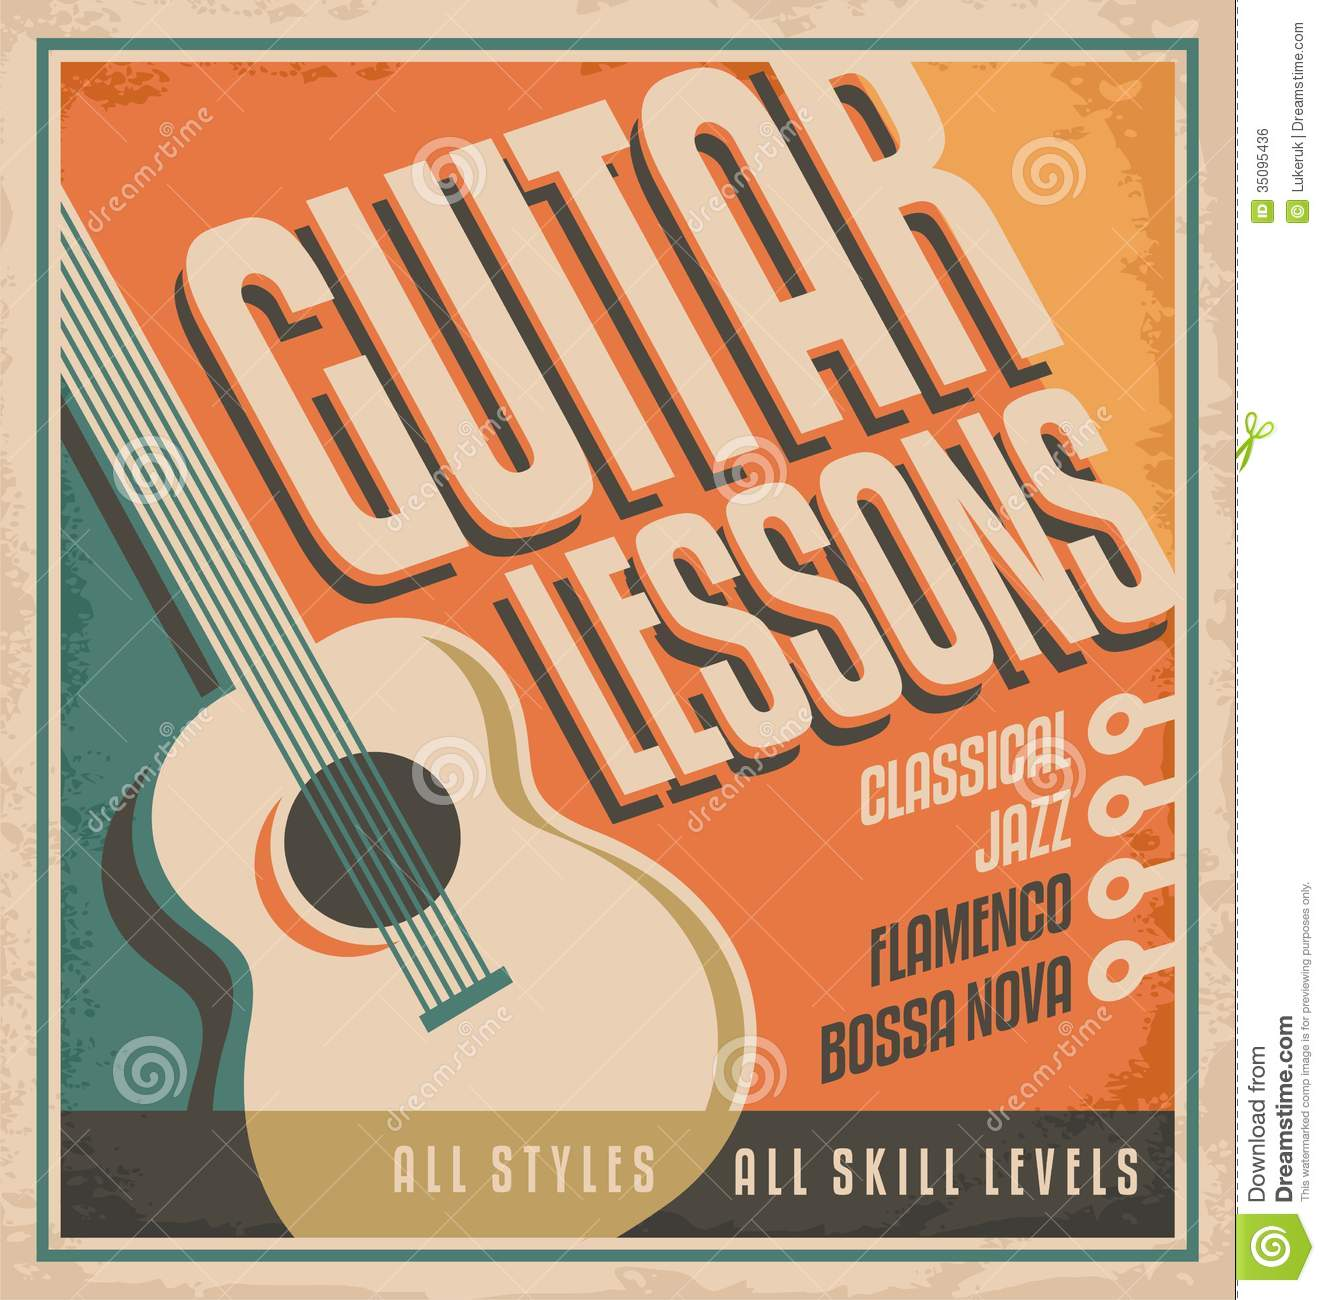 Poster design download -  Design Guitar Learning Lessons Play Poster Download